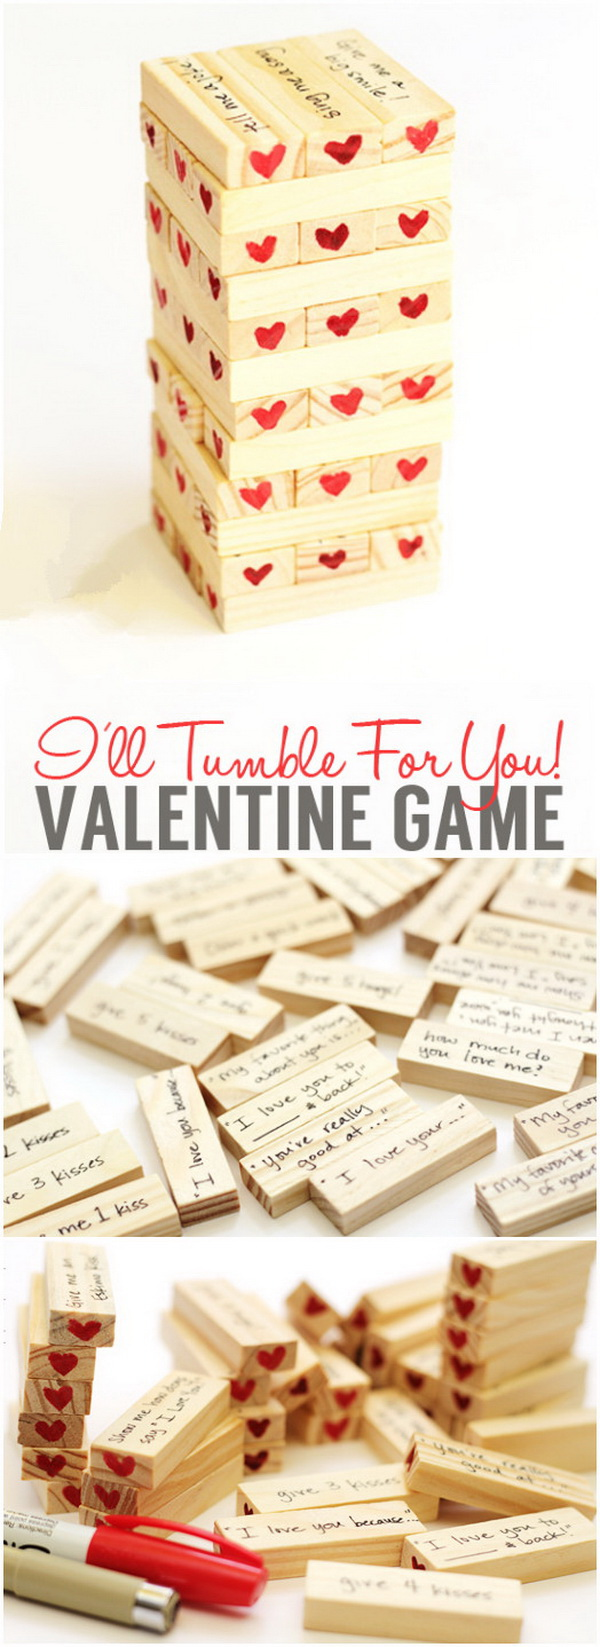 Valentine S Day Hearty Tumble Another Fun Gift Idea For Your